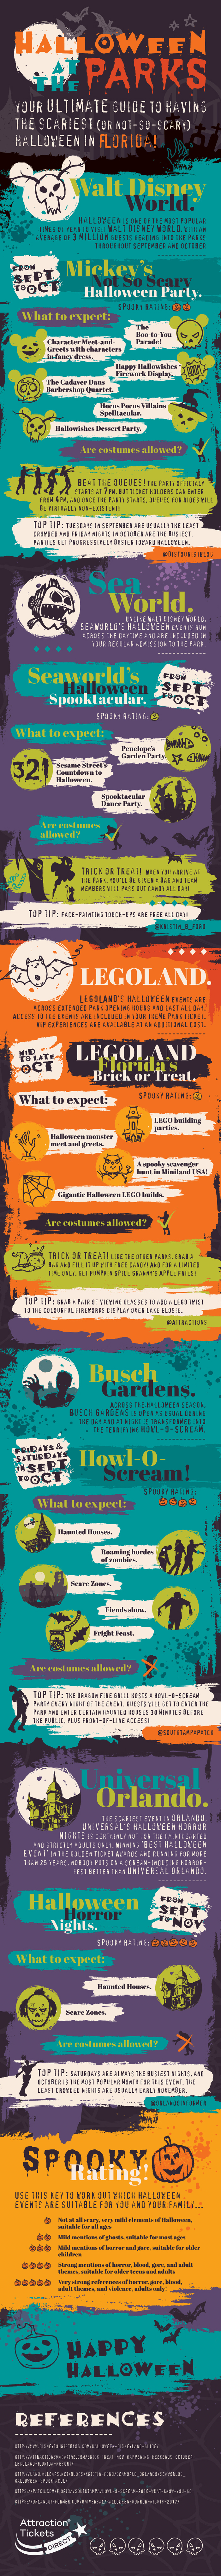 Halloween at the parks infographic